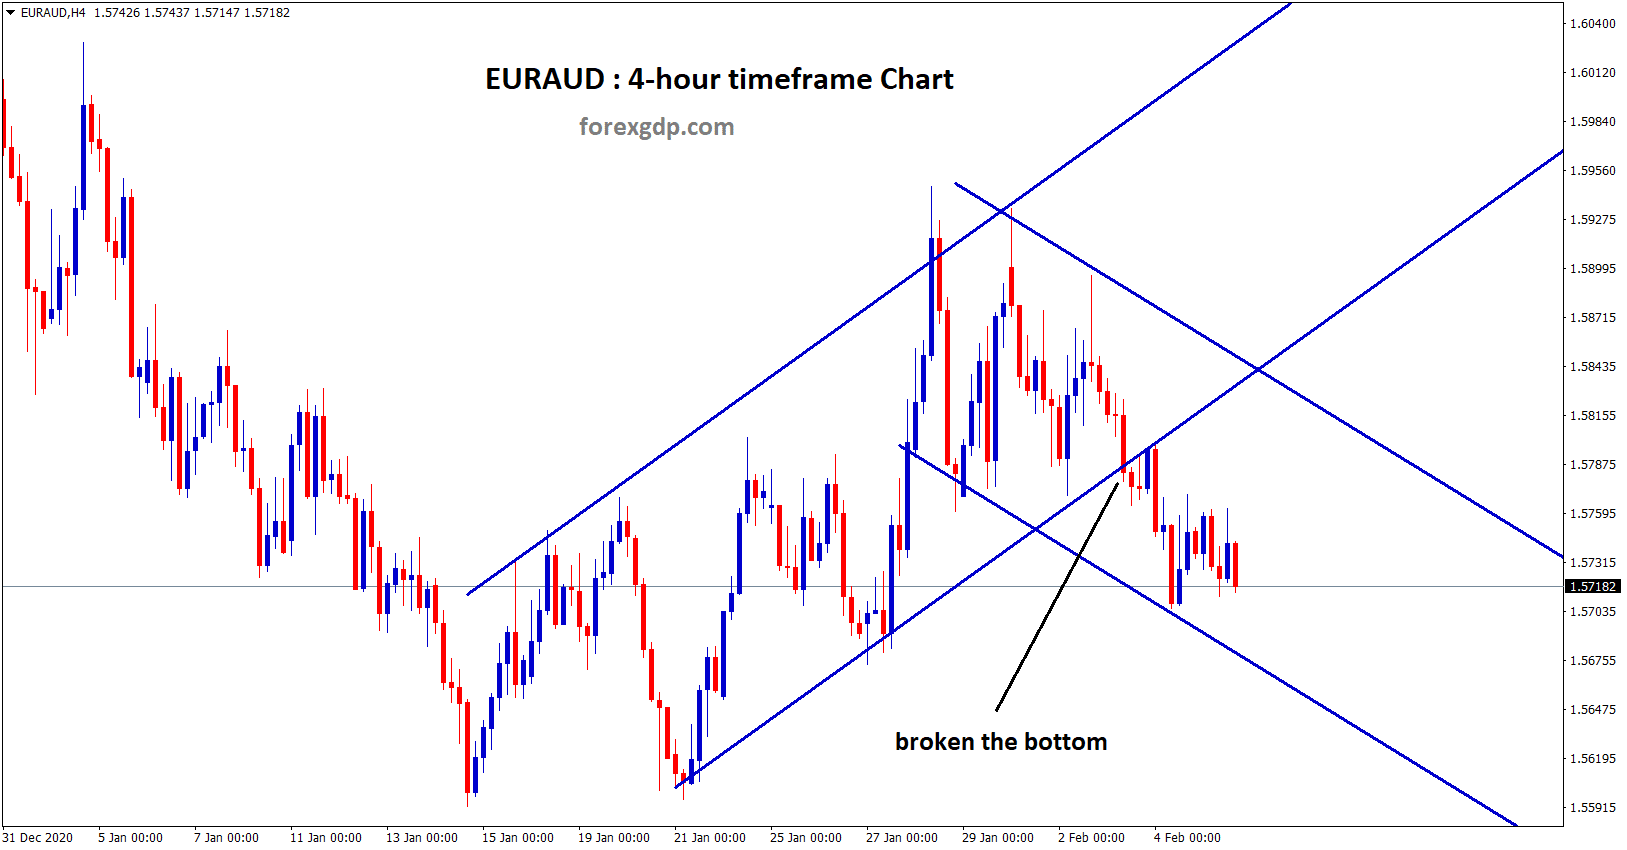 euraud breakout and ranging